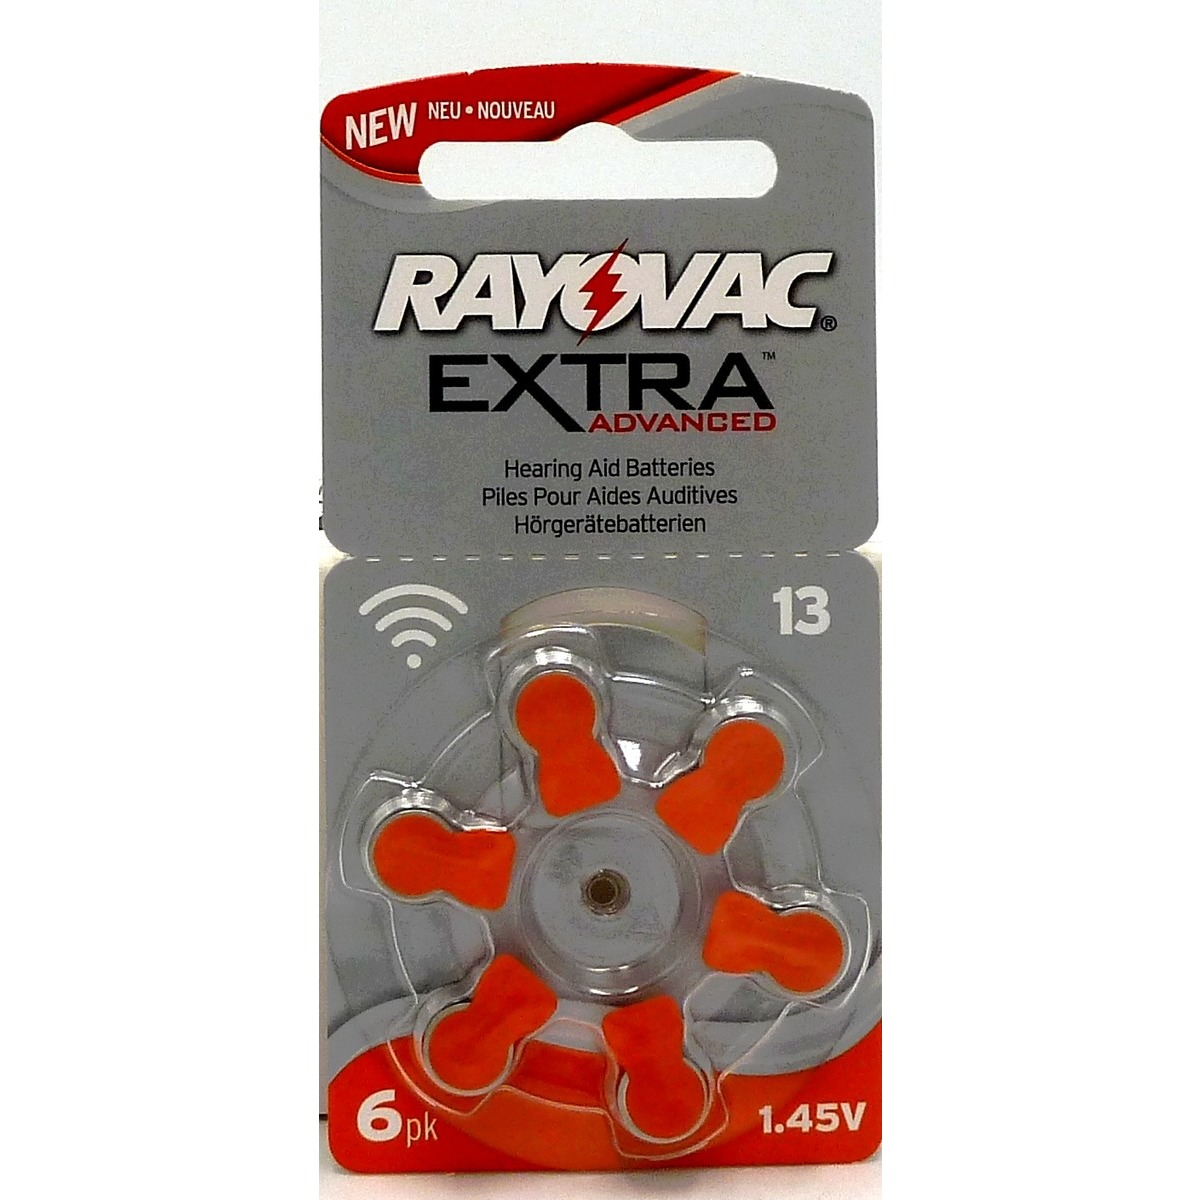 1 plaquette Rayovac Extra Advanced 13